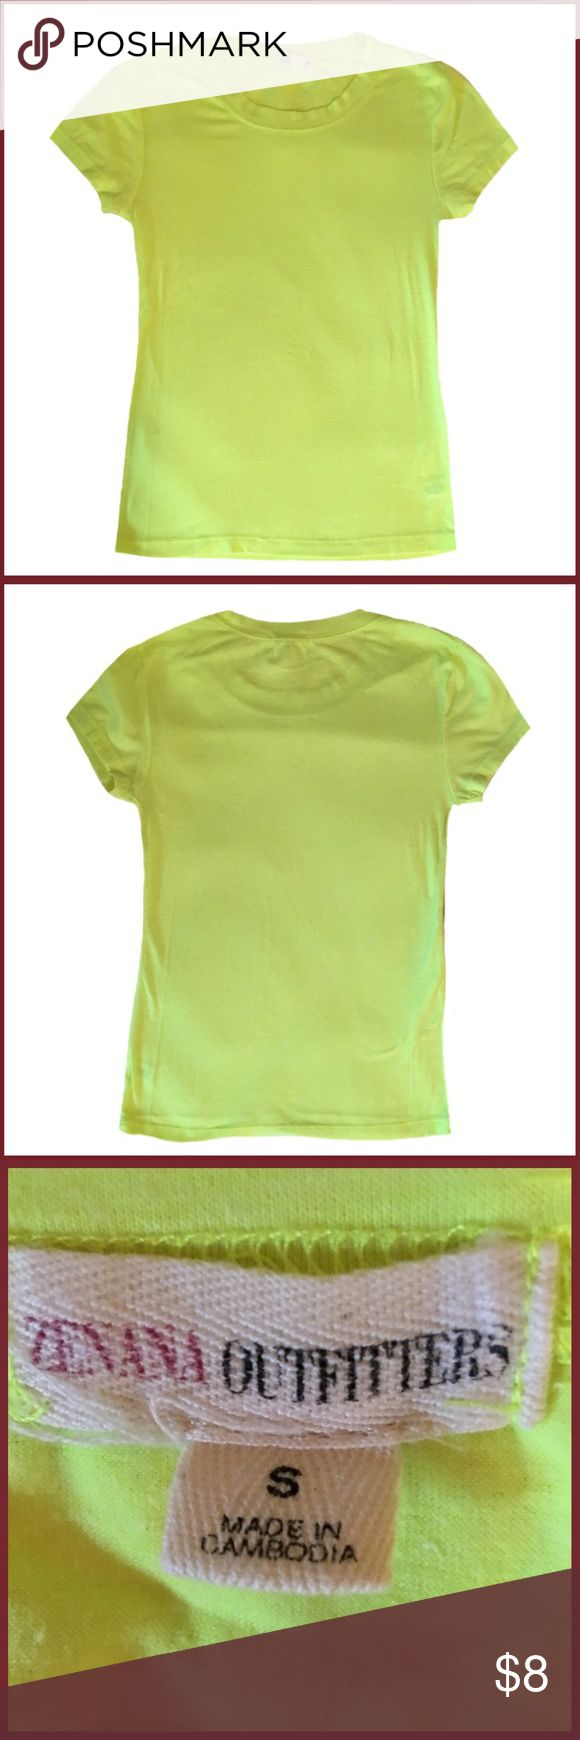 💥Sale💥 Short Sleeve Shirt ◾️Gently used Zenana Outfitters neon yellow short sleeve shirt.                                                                                             ◾️Size Small.                                                                                                                      ◾️Bundle and Save                             Summer neon colorful bright beach vacation water green sand Zenana Outfitters Tops Tees - Short Sleeve